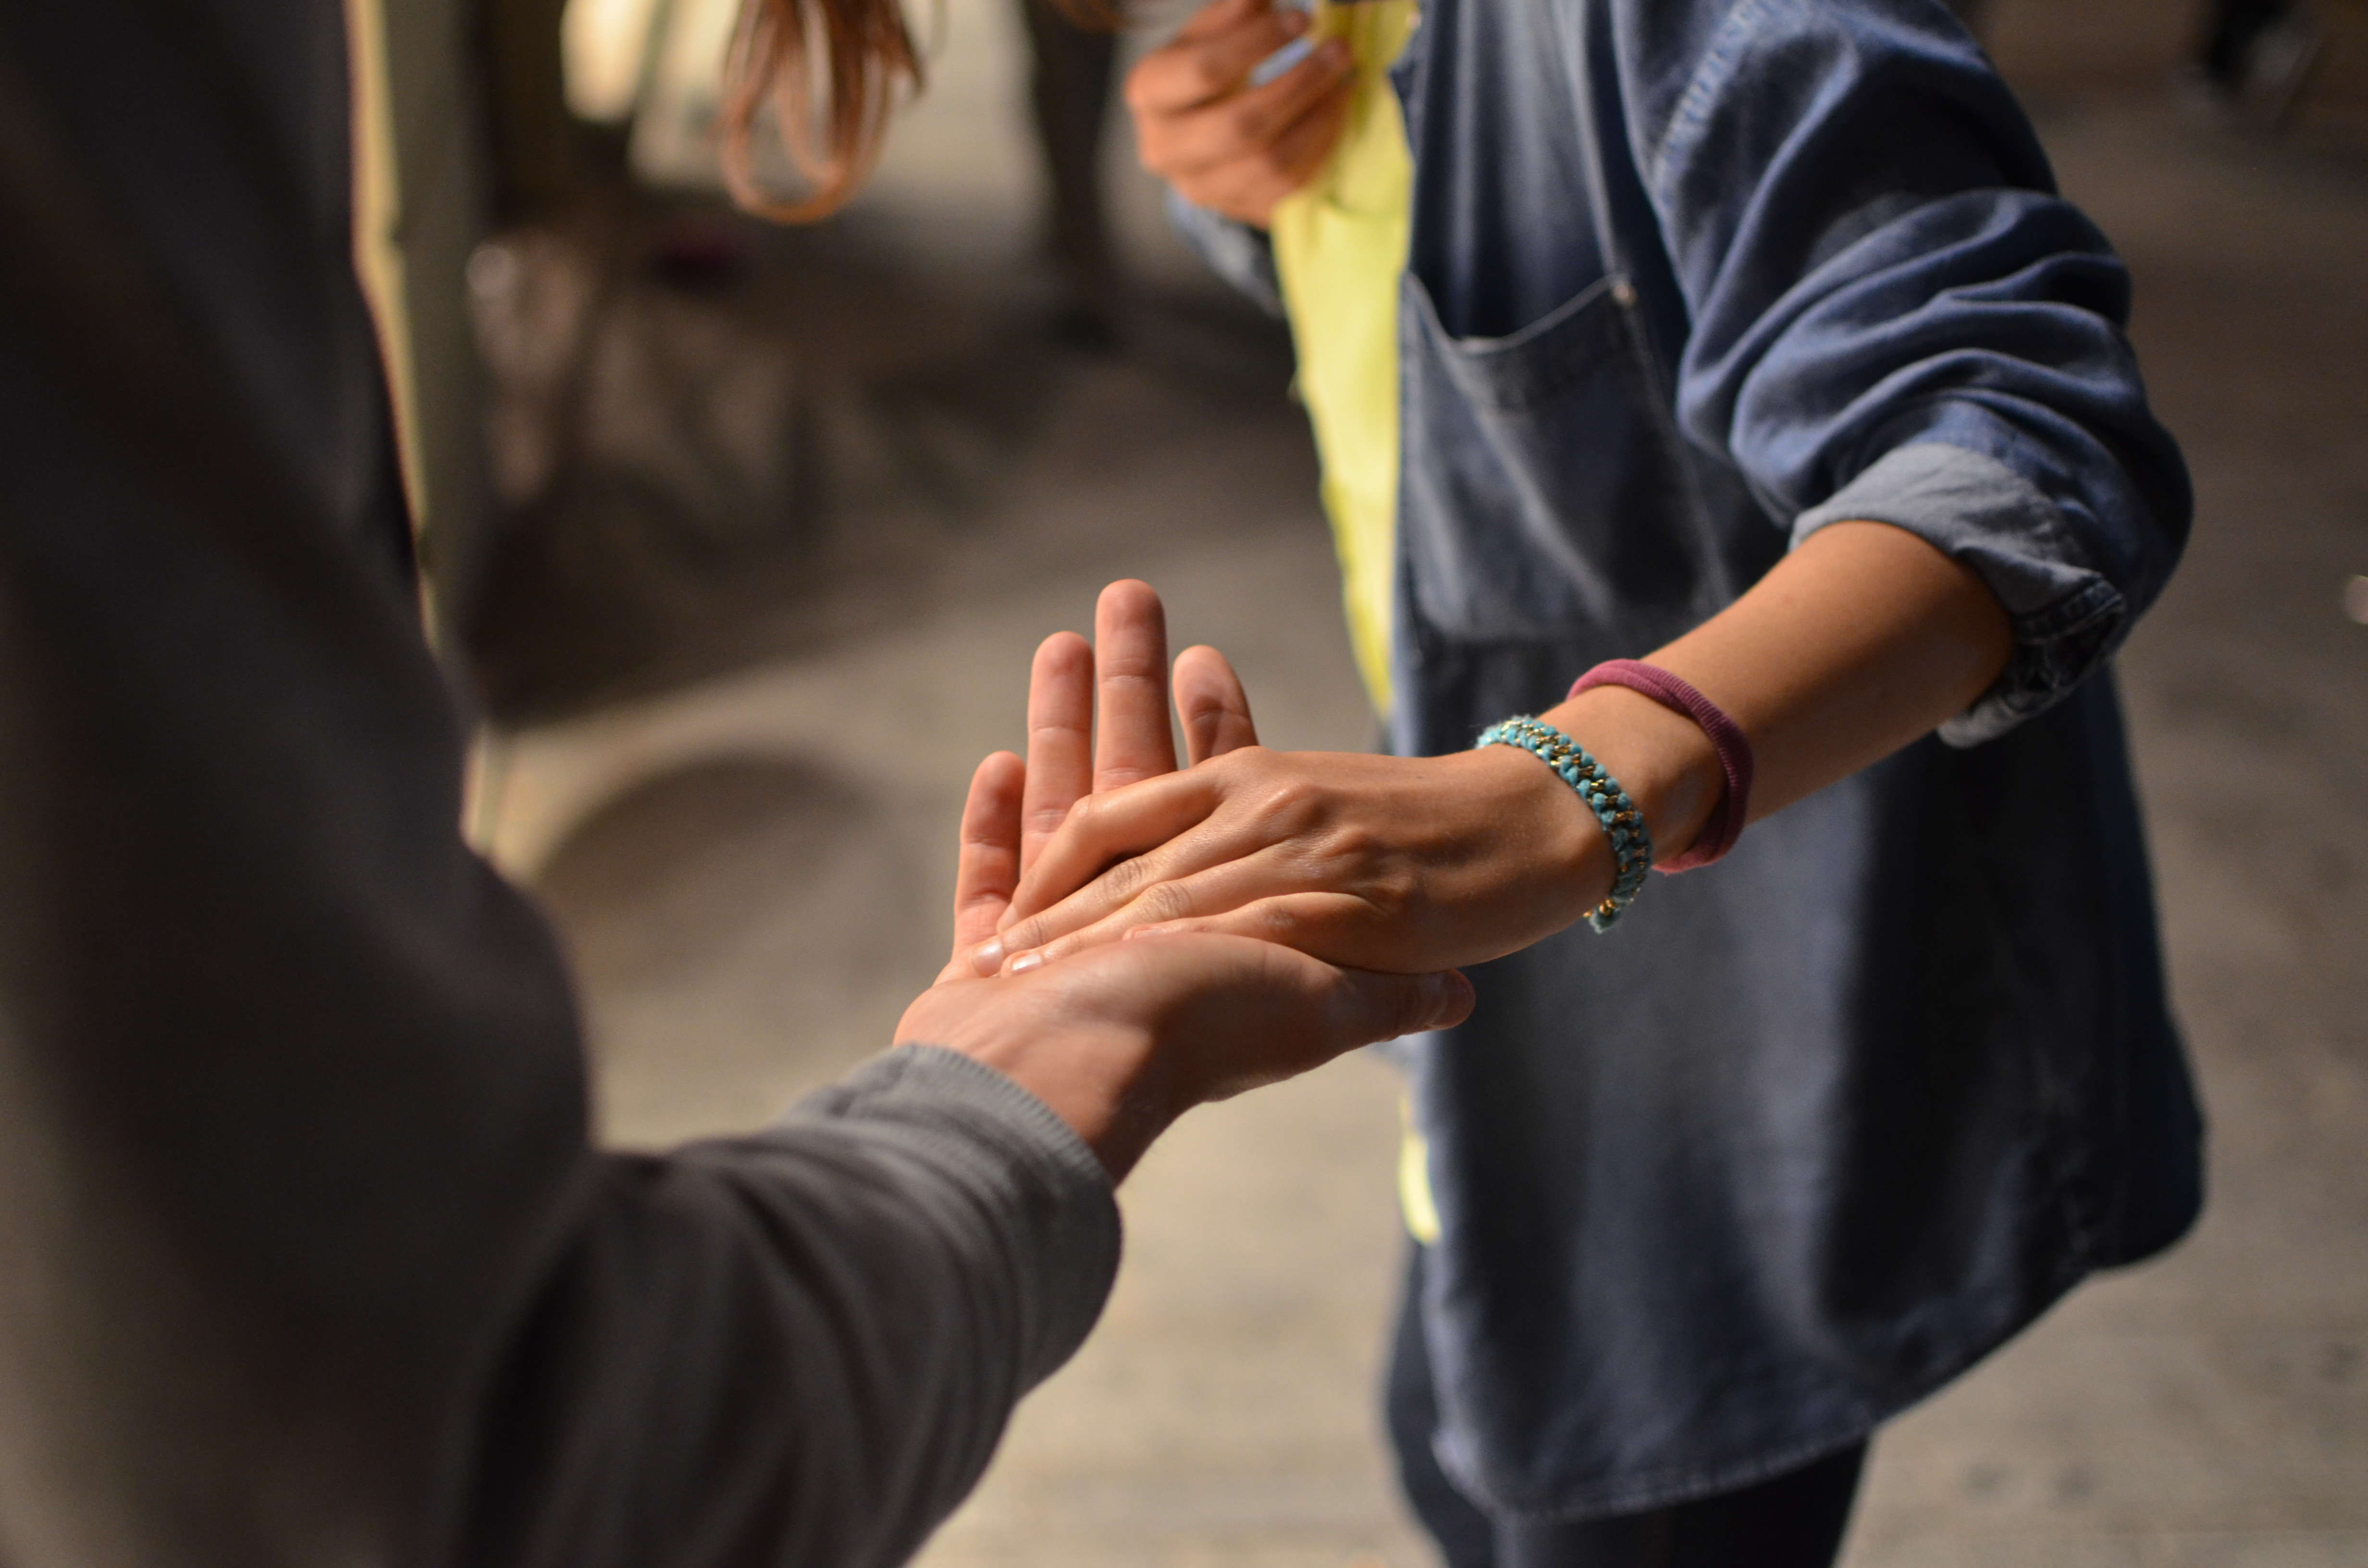 The Power of Practicing Compassion